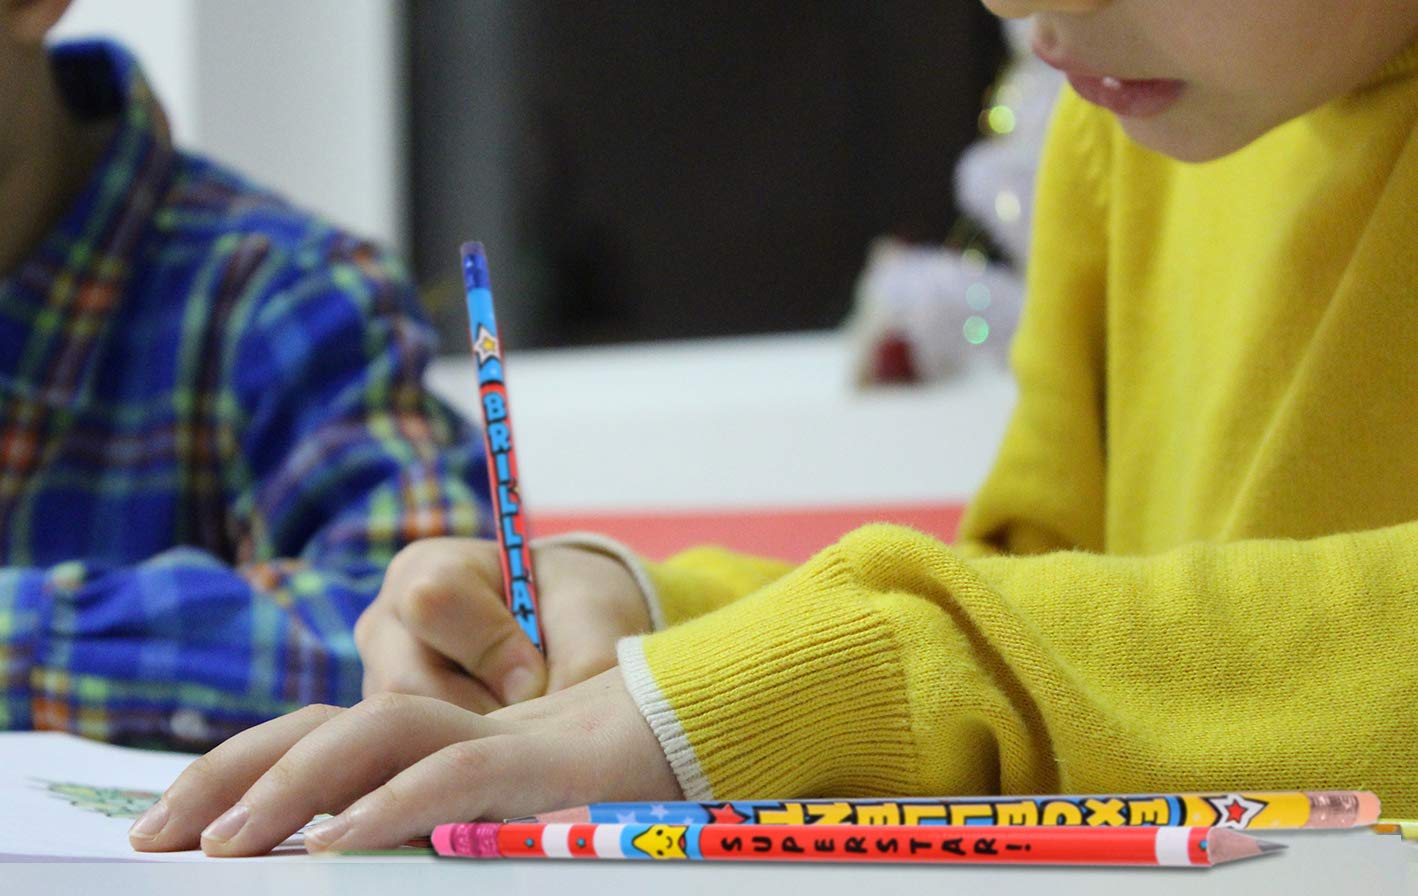 Madisi Assorted Colorful Pencils, Incentive Pencils,#2 HB, 10 Dsigns, 150 Pack, pencils bulk for kids by Madisi (Image #5)